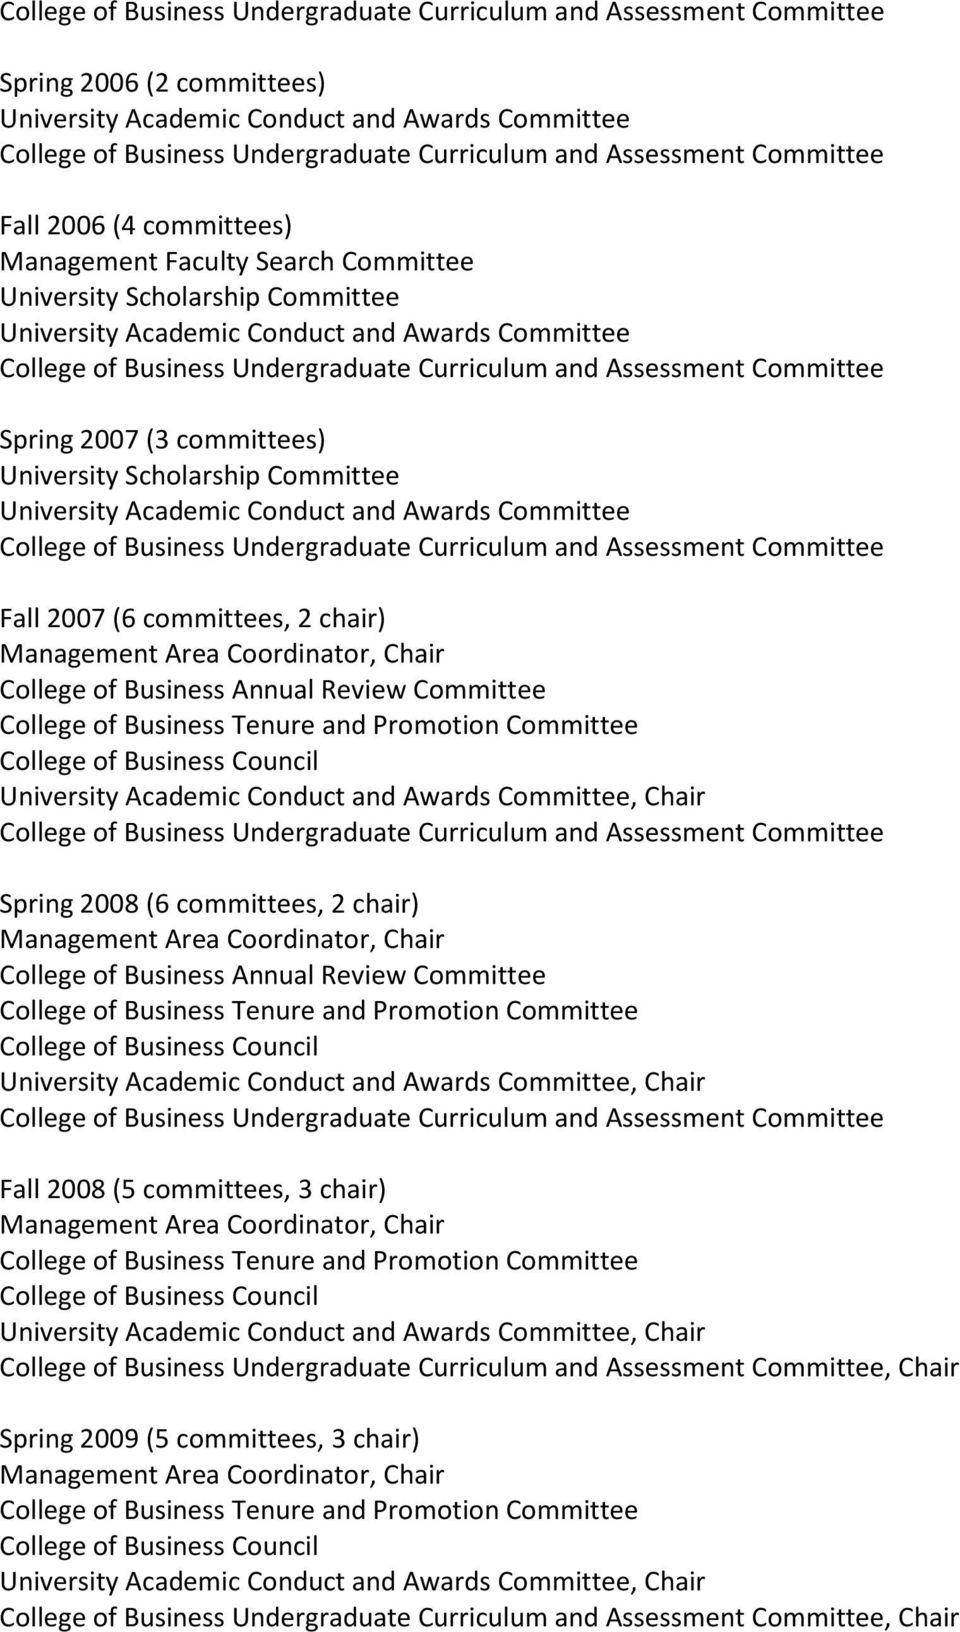 Committee University Academic Conduct and Awards Committee, Chair Spring 2008 (6 committees, 2 chair) College of Business Annual Review Committee University Academic Conduct and Awards Committee,